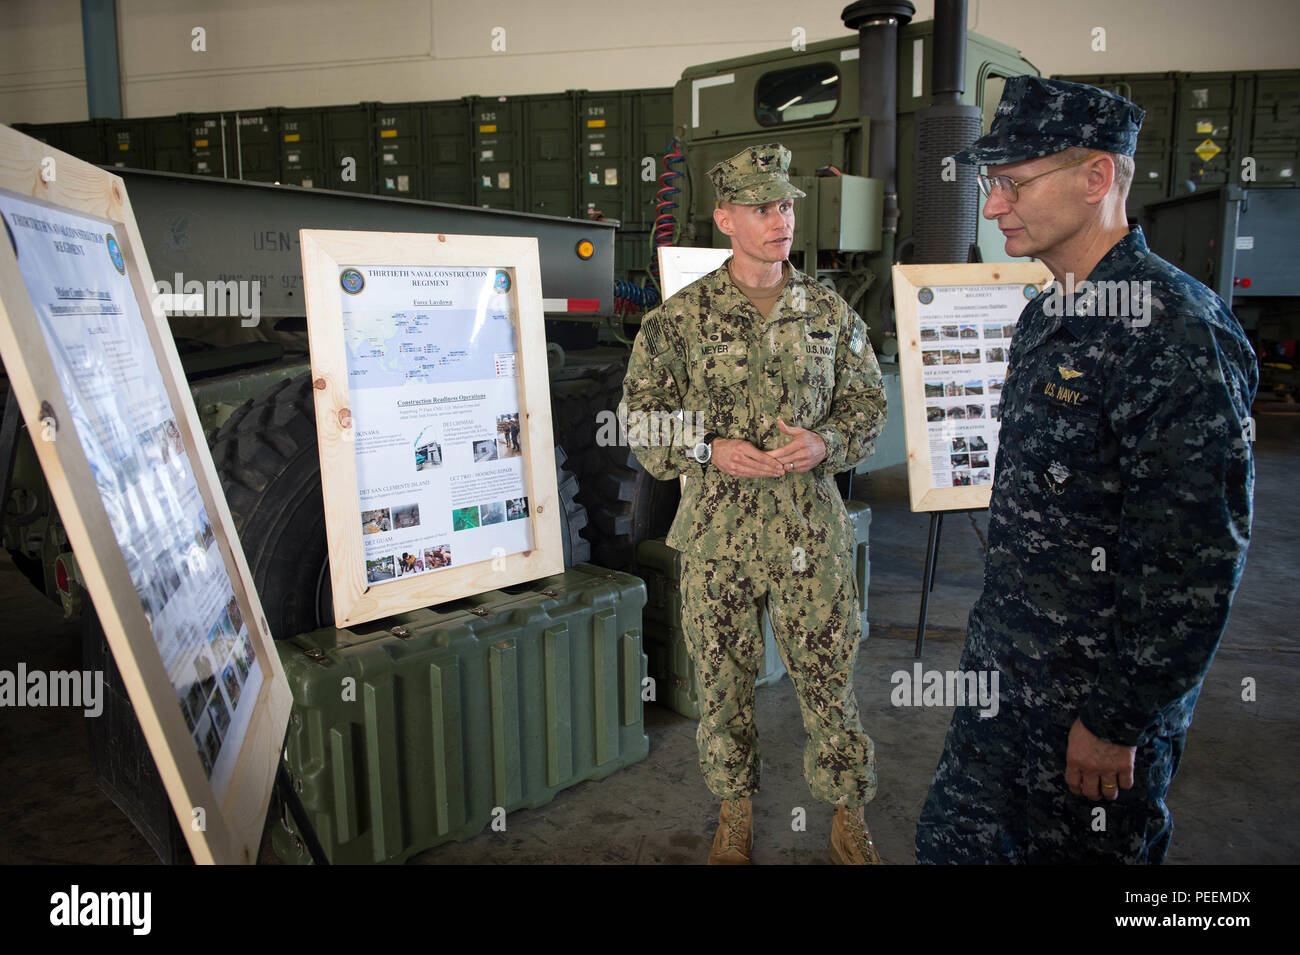 Capt. James G. Meyer, Commodore, 30th Naval Construction Regiment (NCR), briefs Vice Adm. Joseph P. Aucoin, Commander, U.S. Seventh Fleet, on NMCB 1 civil engineer support equipment (CESE) capabilities at Naval Base Guam, Jan. 22, 2016. NMCB 1 provides expeditionary construction and engineering (combat service support) to include horizontal and vertical construction; maintenance and operation of expeditionary bases and facilities; tactical sustainment bridging, Humanitarian Assistance (HA) through Construction Civic Action Details (CCAD) and Civic Action Teams (CAT) and theater disaster respon Stock Photo